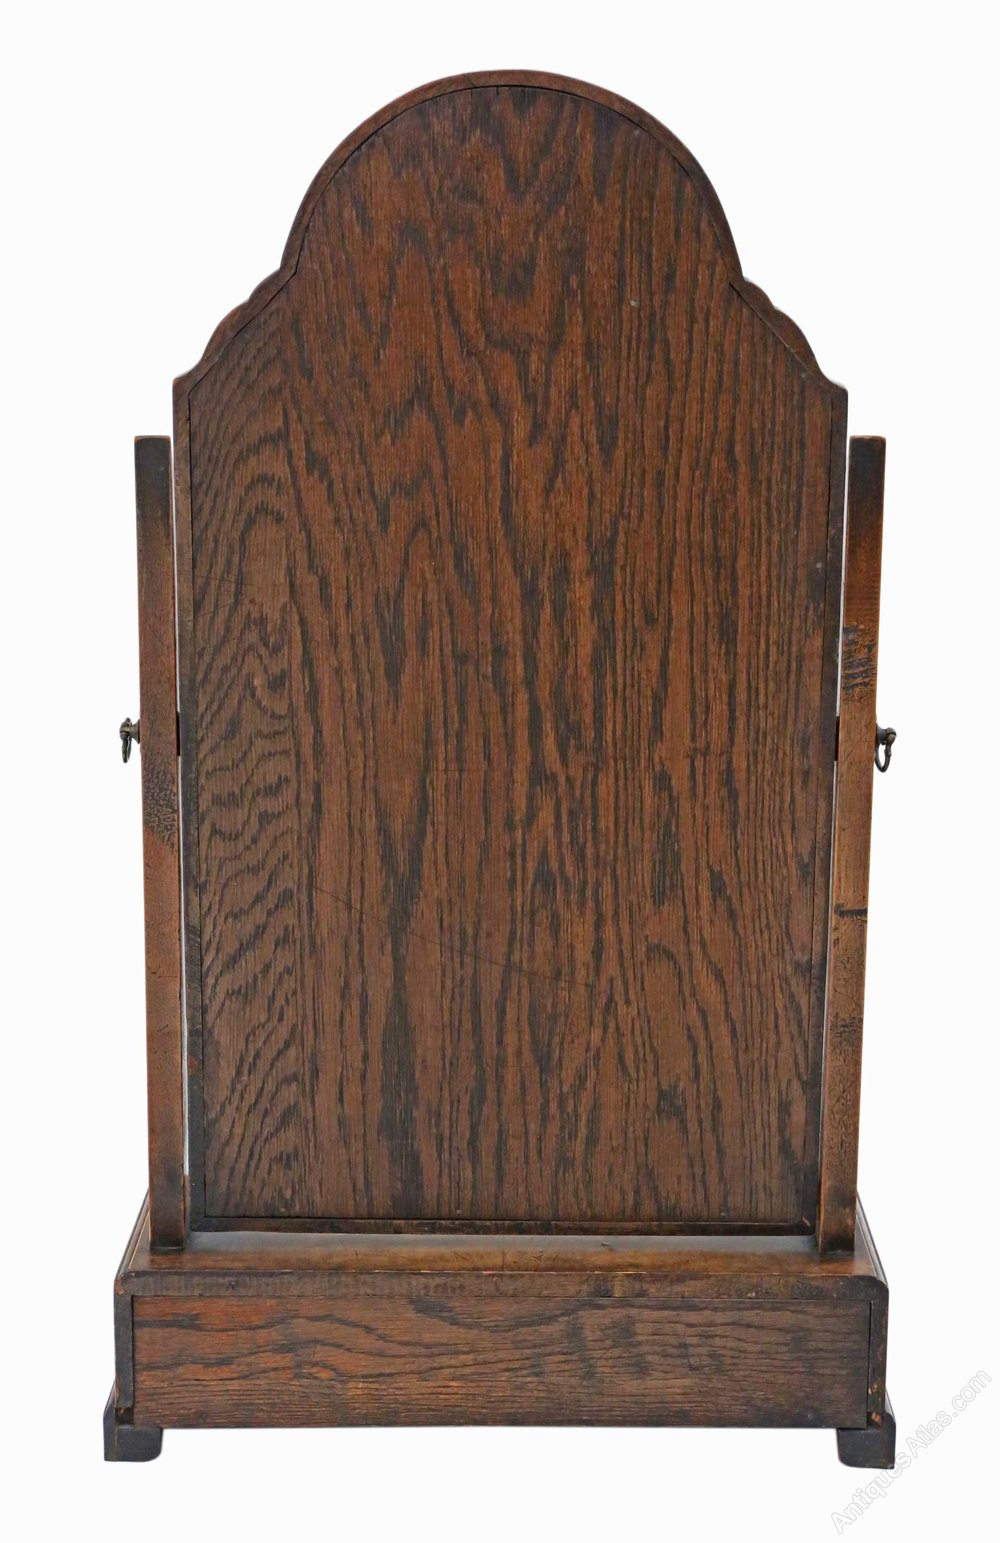 Shes Hot Antique Swinging Table Mirror Yea Wow-1618